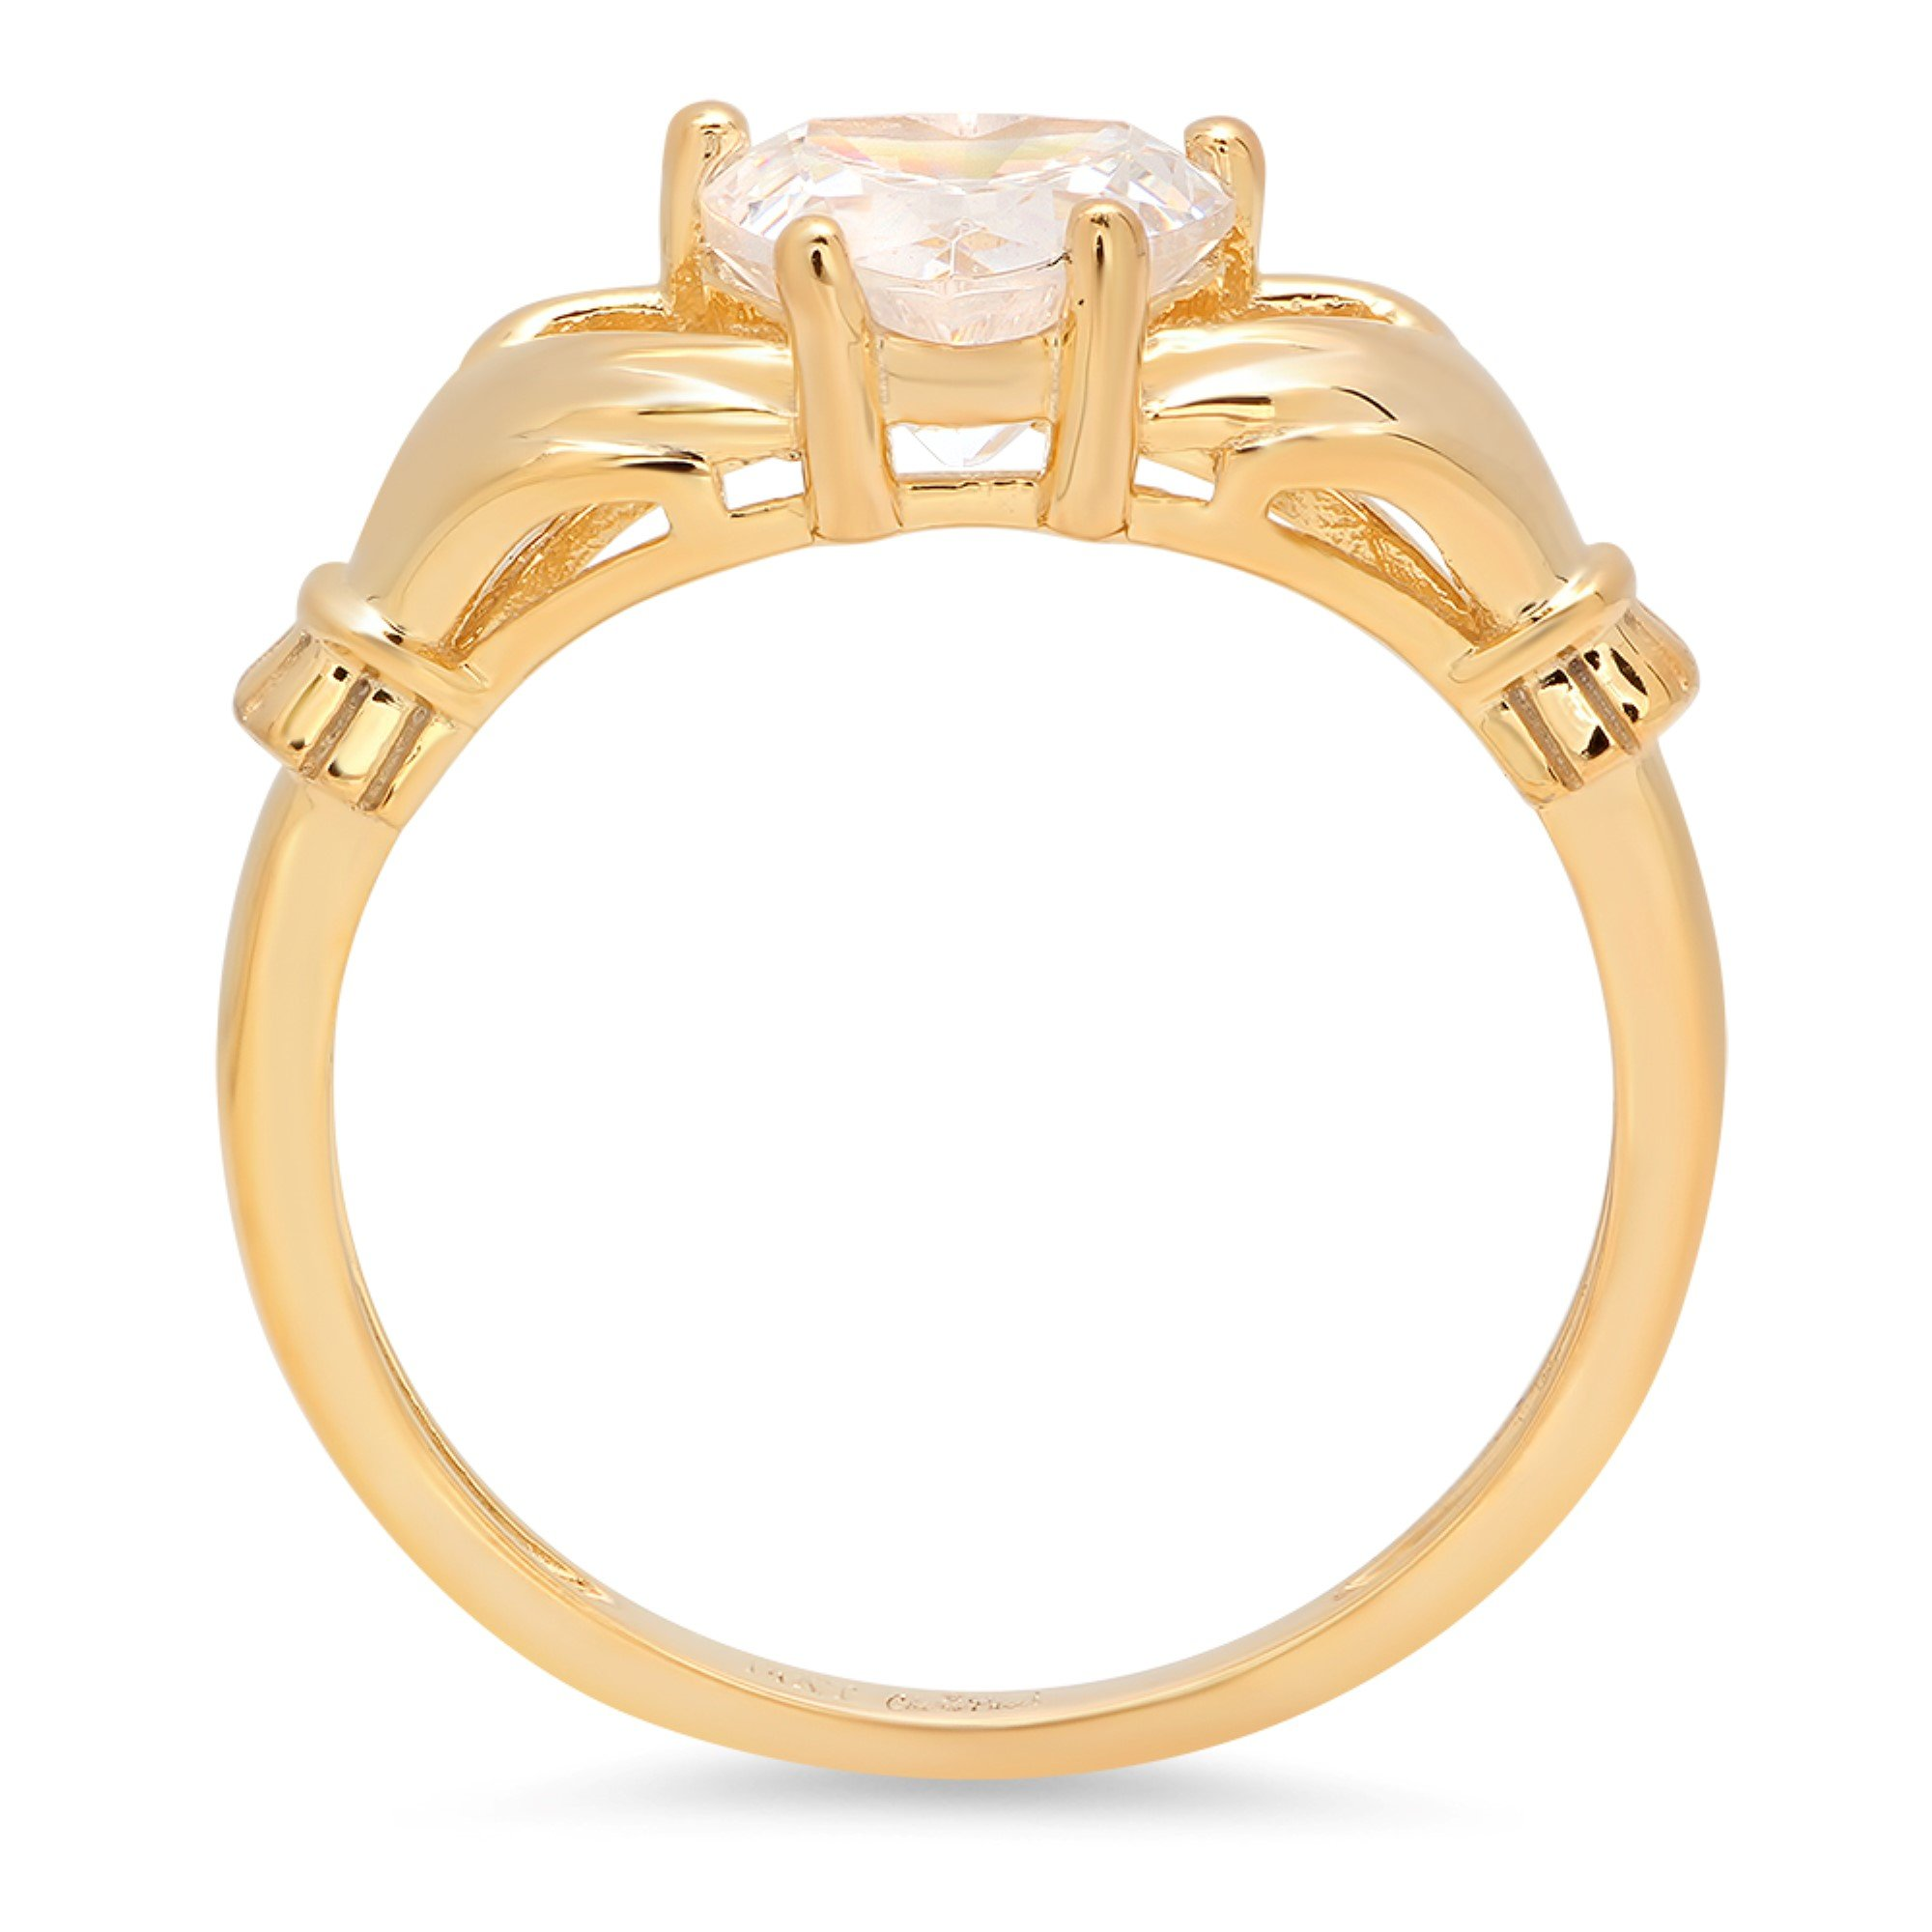 1.45ct Brilliant Heart Cut Irish Celtic Claddagh Solitaire Anniversary Statement Engagement Wedding Promise Ring in Solid 14k Yellow Gold for Women, 9.75 by Clara Pucci (Image #2)